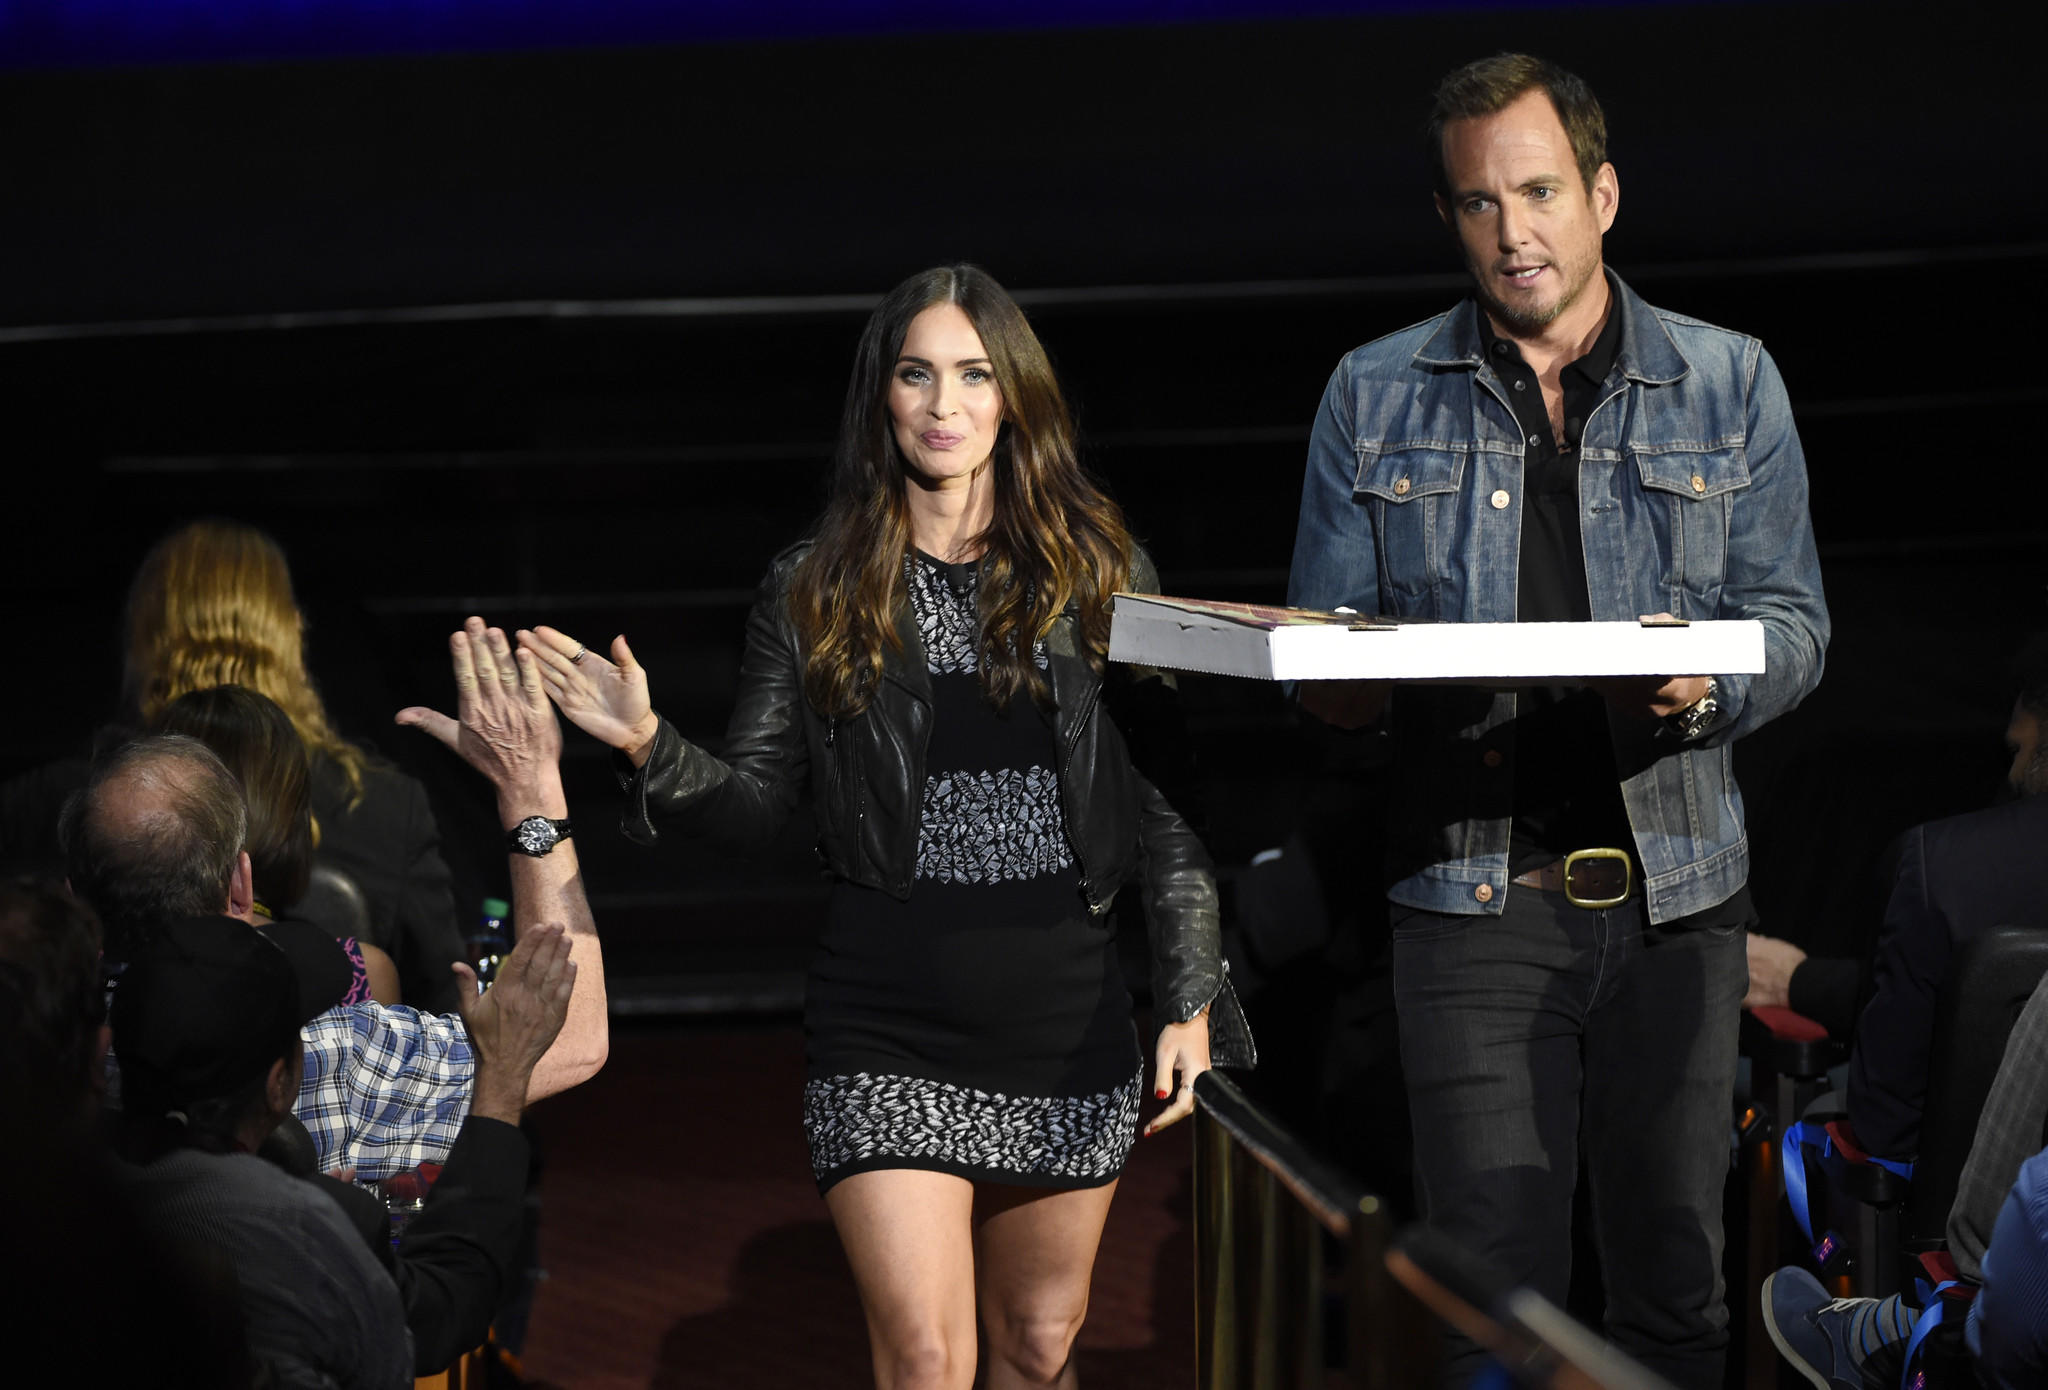 Megan Fox and Will Arnett at CinemaCon. (Chris Pizzello/Invision/AP)